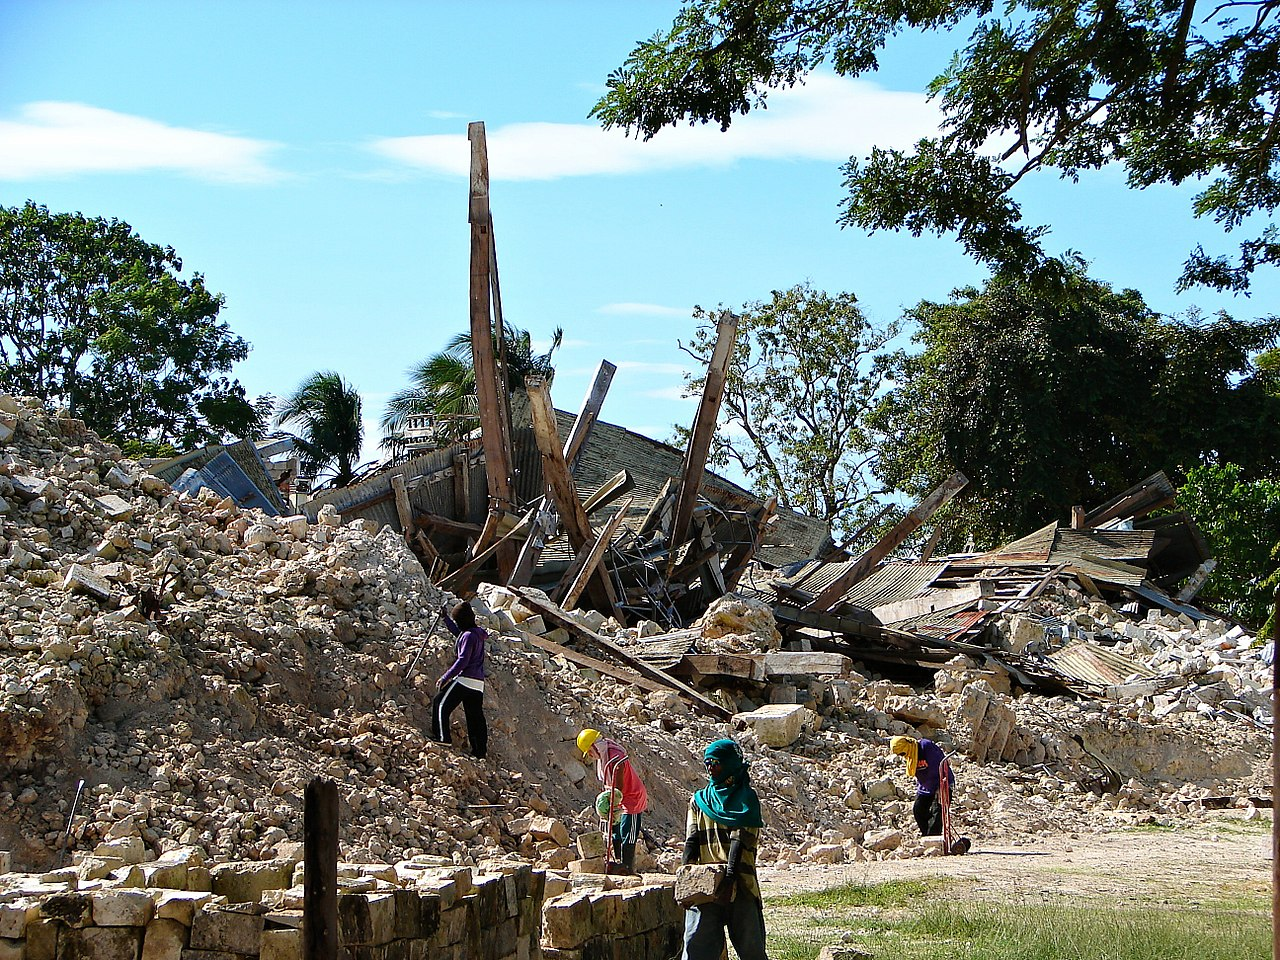 Loon church building and convent were reduced to rubble when a 7.2 magnitude earthquake struck Bohol